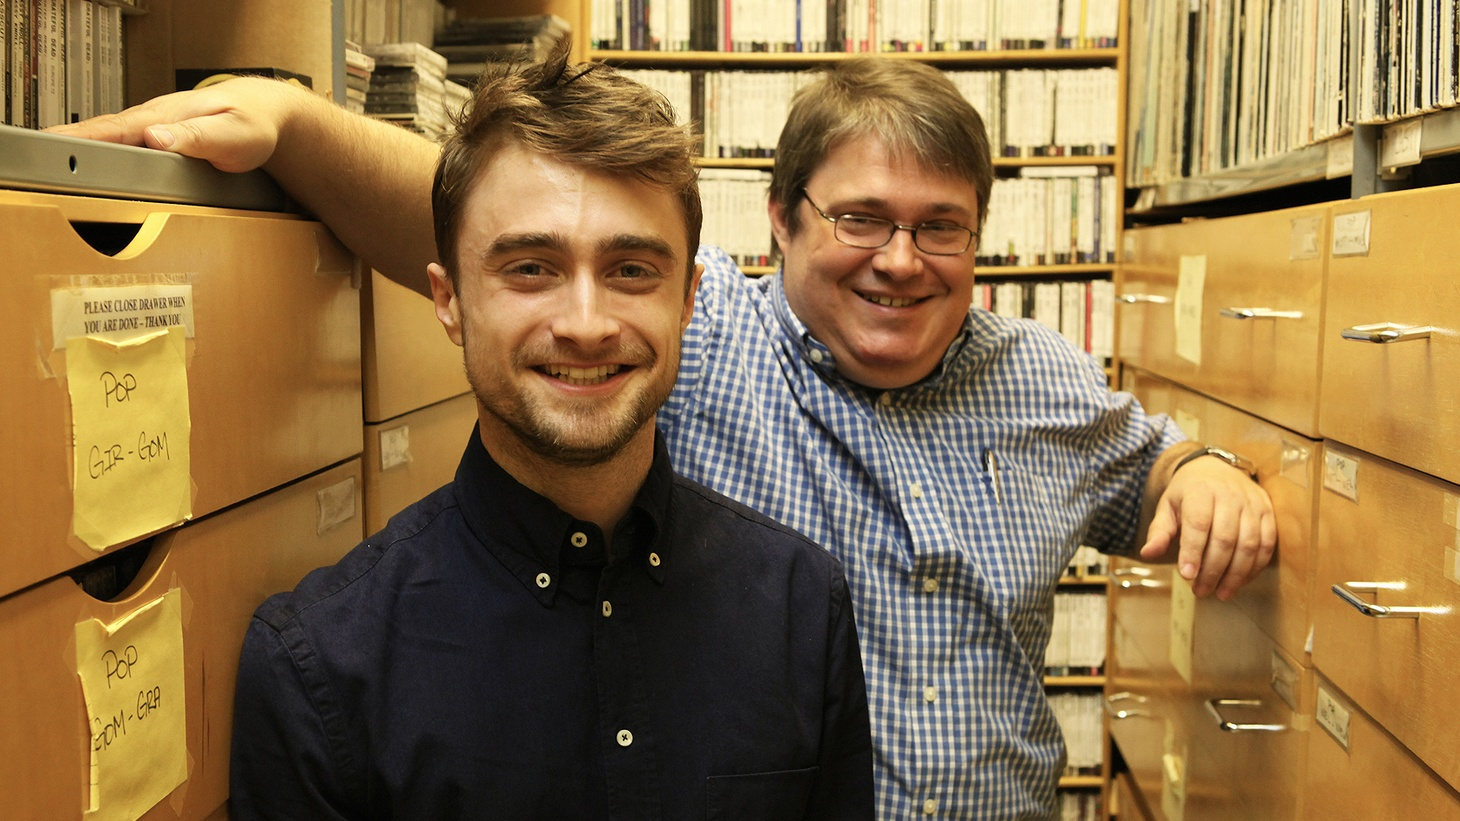 Actor Daniel Radcliffe starred in one of the most successful film franchises of all time but when it comes to music, the Harry Potter star likes a bit of anarchy.